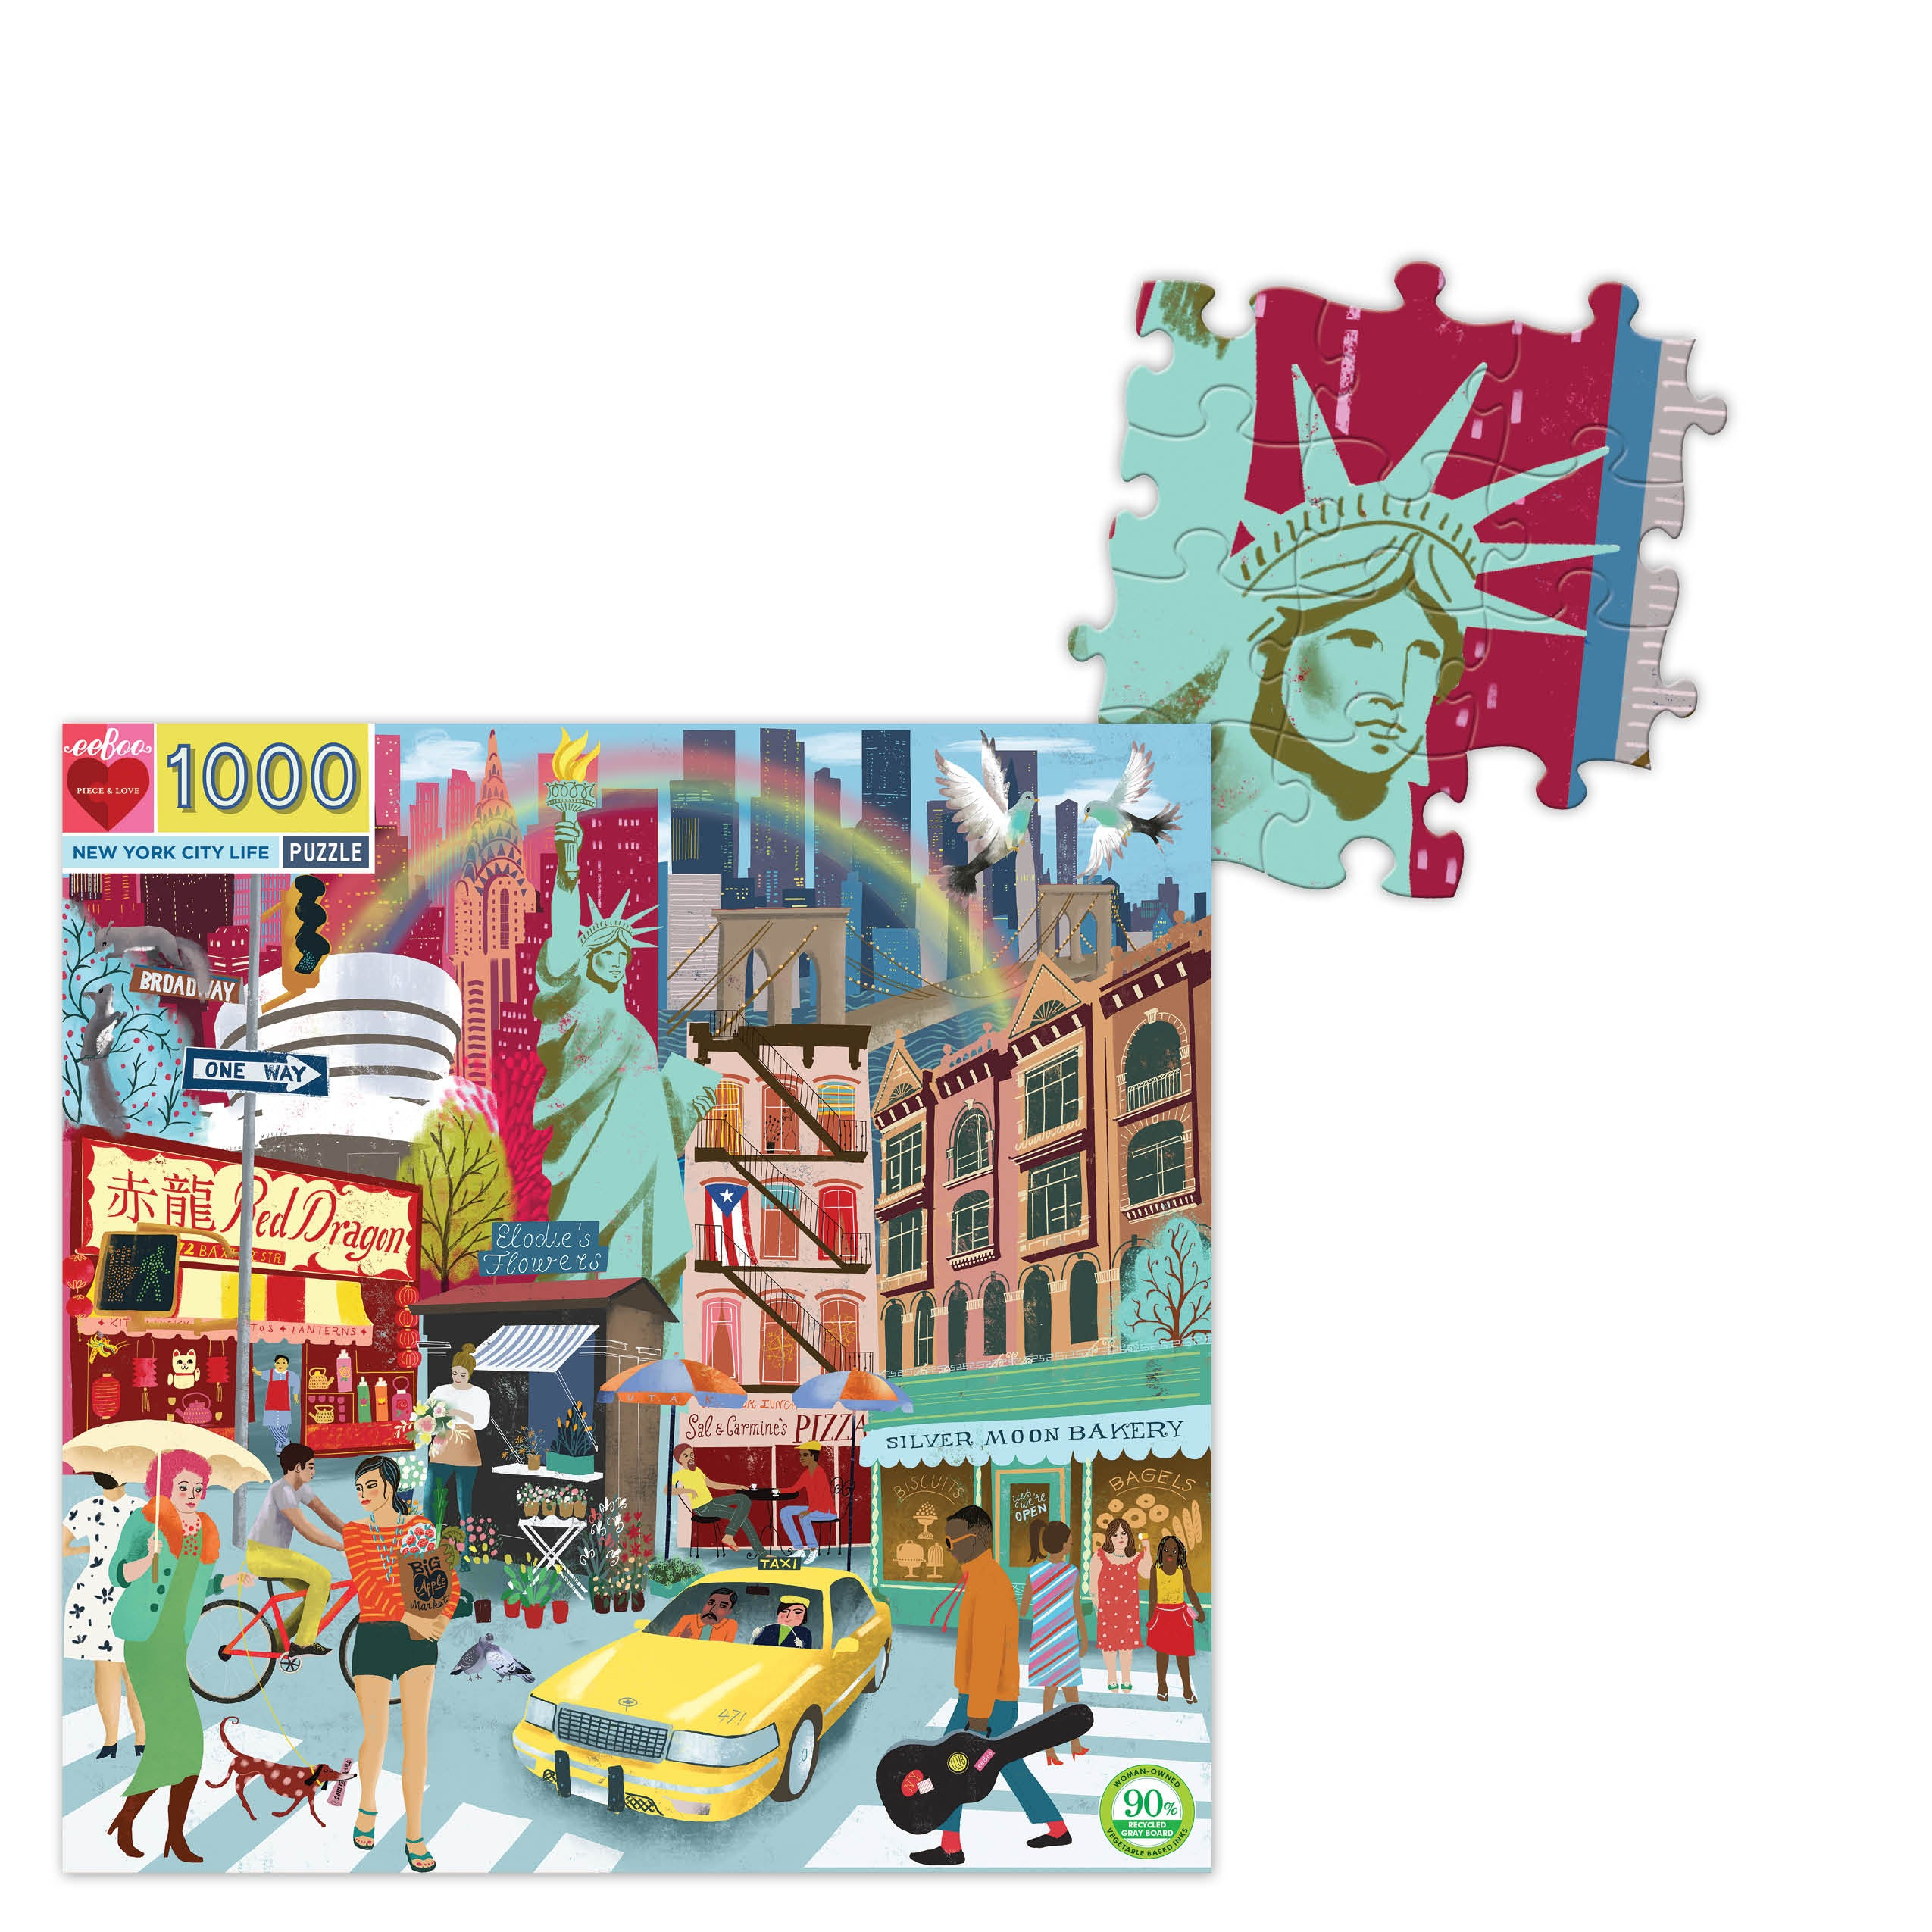 BACK SOON! (End May/June) 1000 Piece New York City Life Jigsaw Puzzle